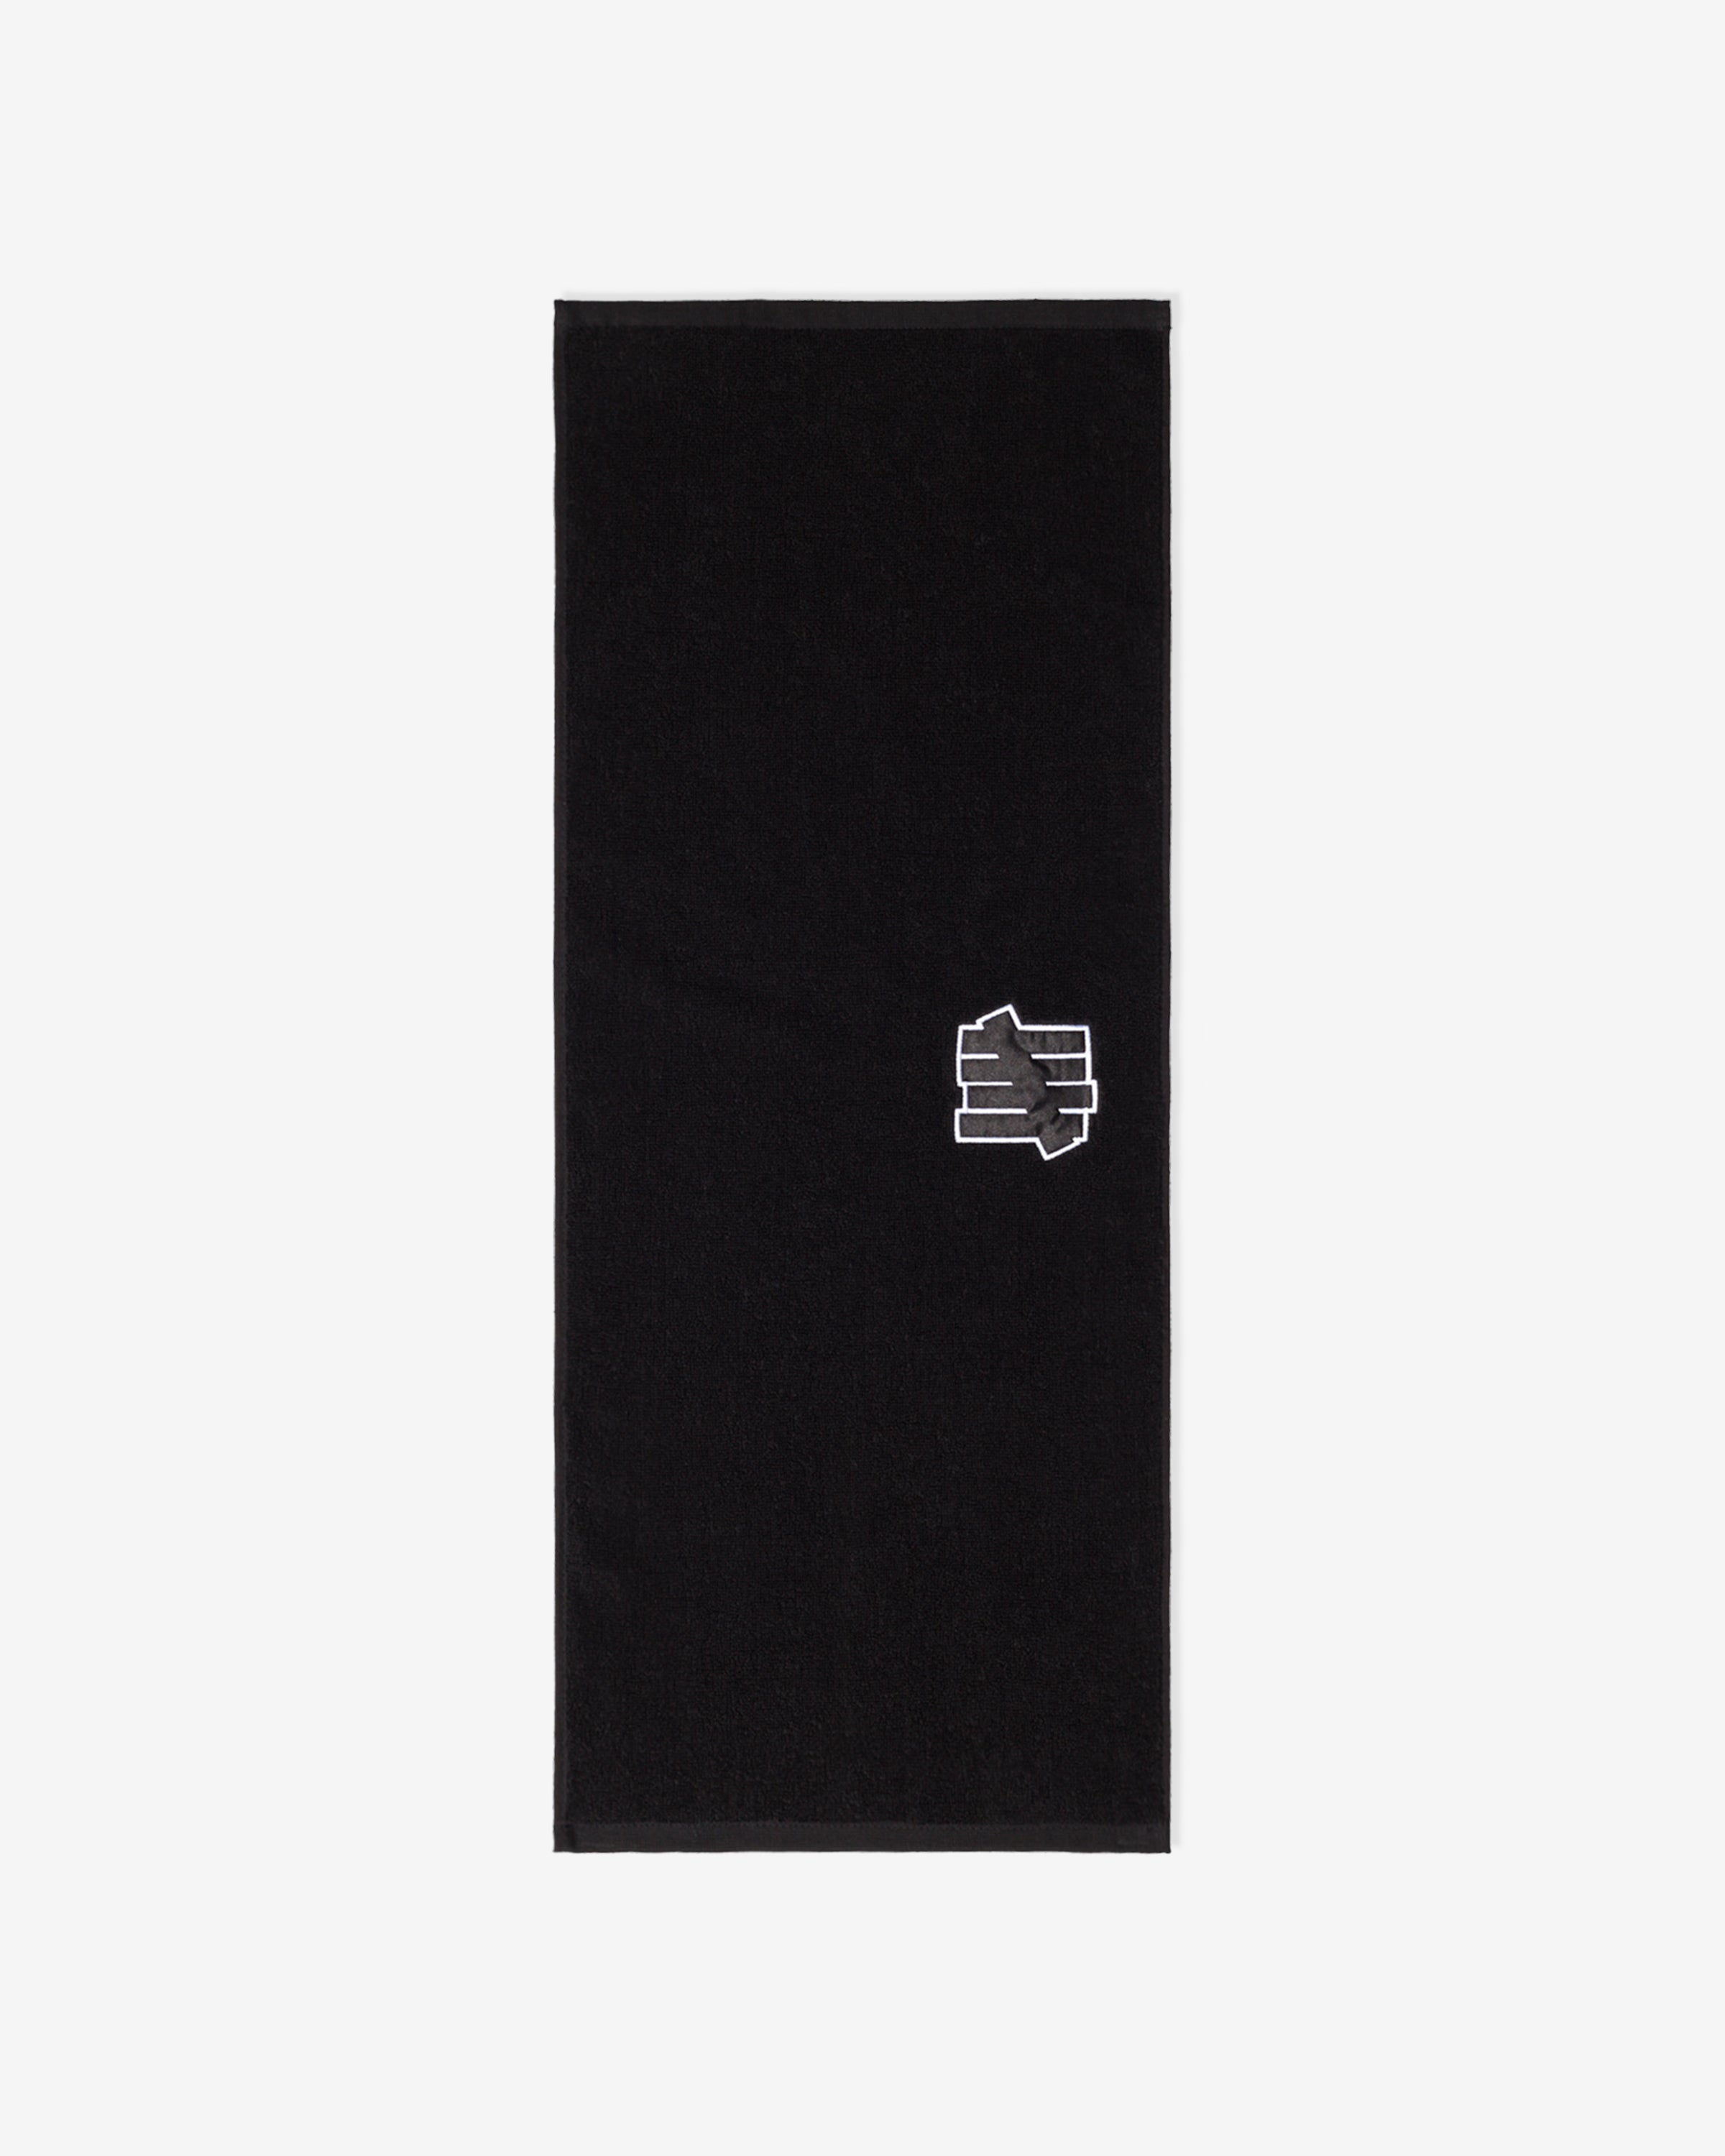 UNDEFEATED APPLIQUE NECK TOWEL - BLACK